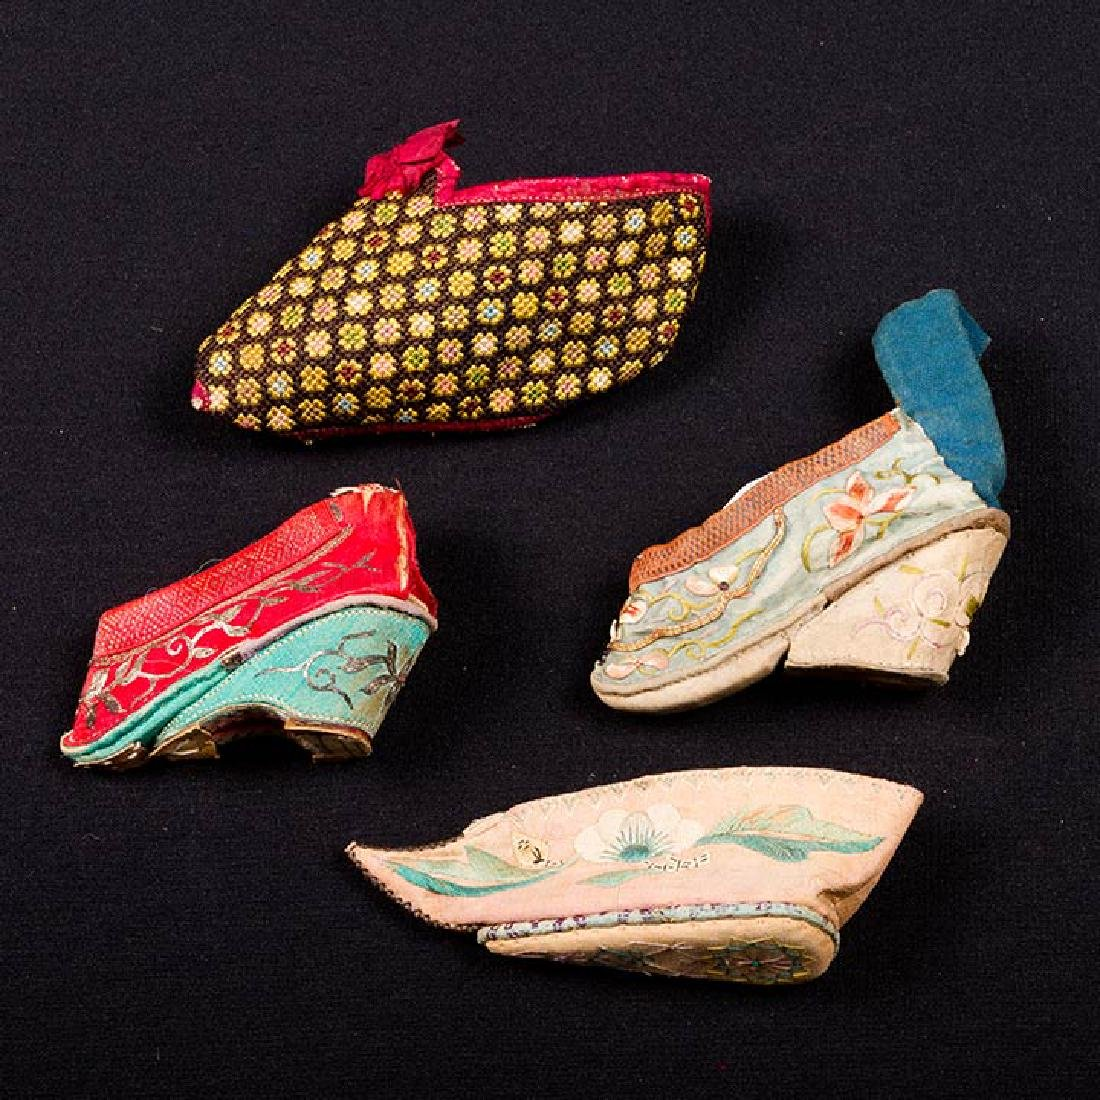 2 PAIR & 6 SINGLE SHOES FOR BOUND FEET, CHINA - 3